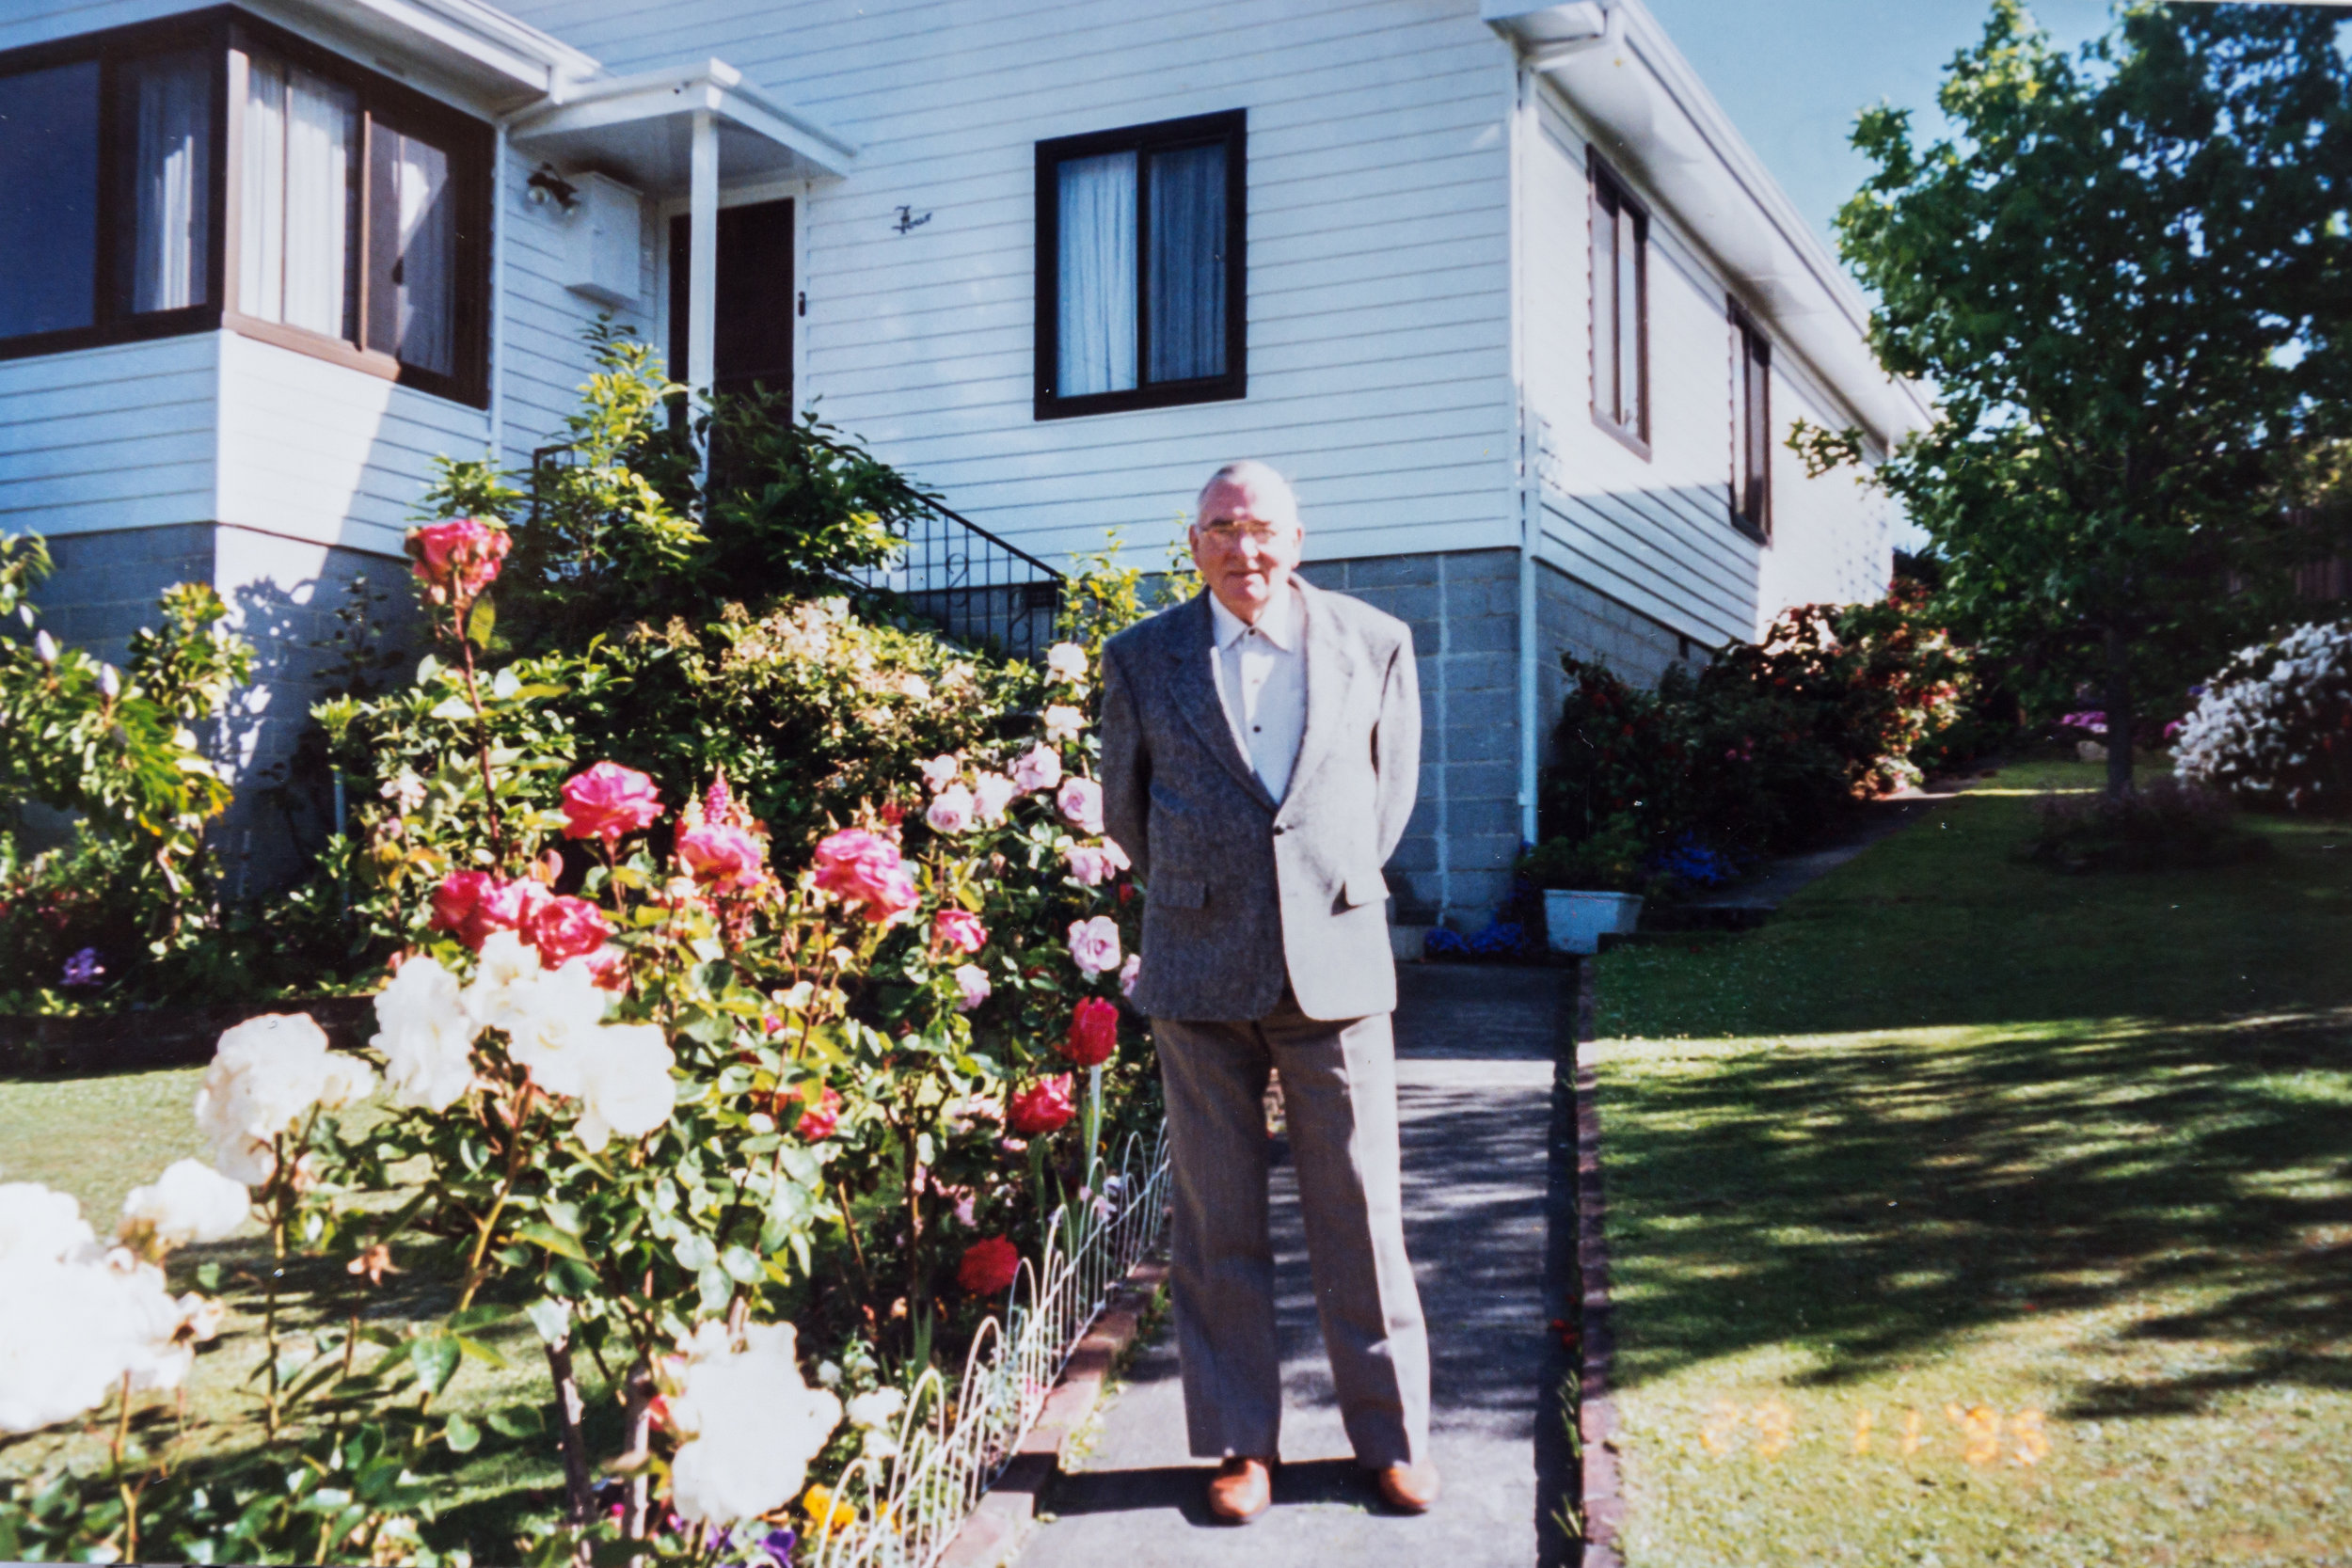 Ted standing proudly in the garden he created at his home at 4 Tootonga Street